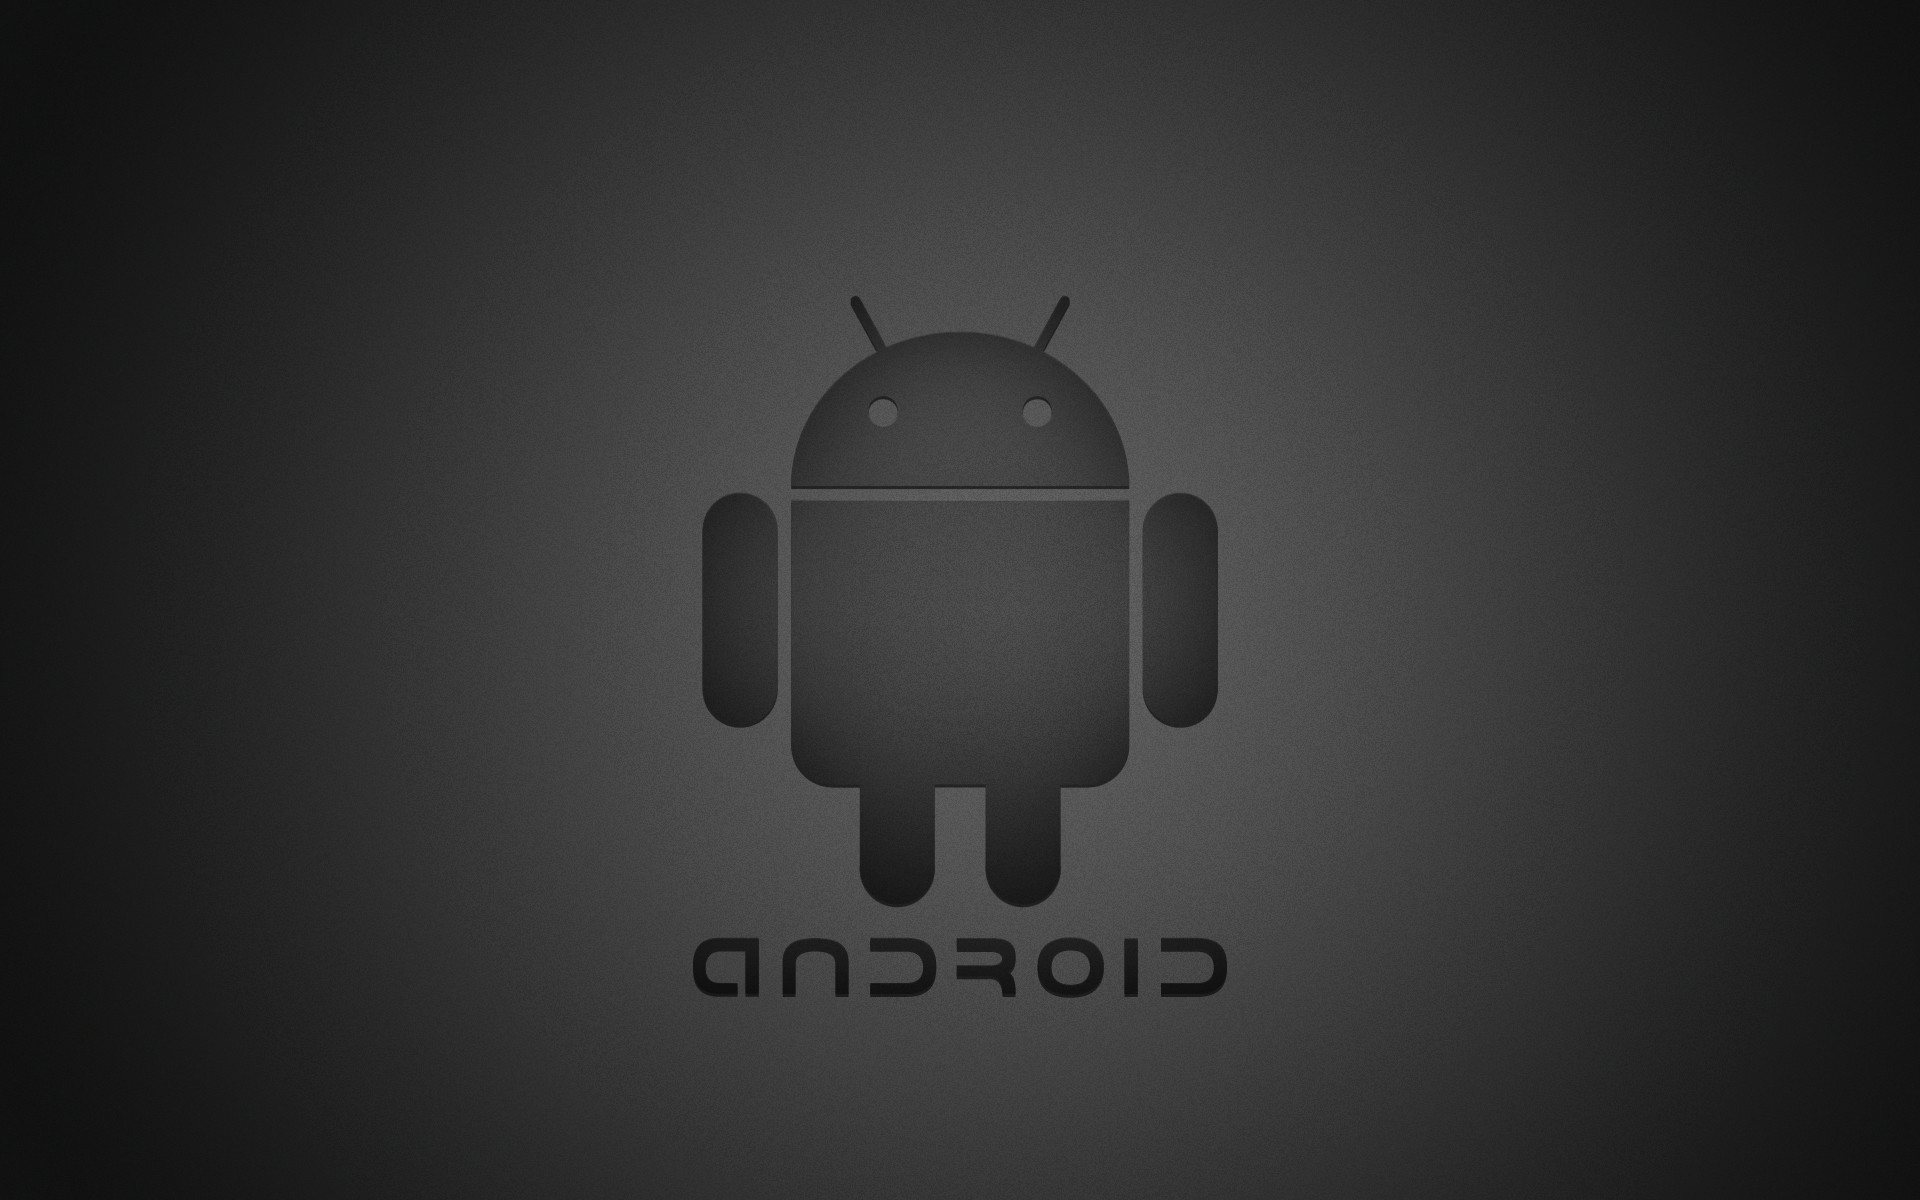 Android Wallpaper Size Free Download.